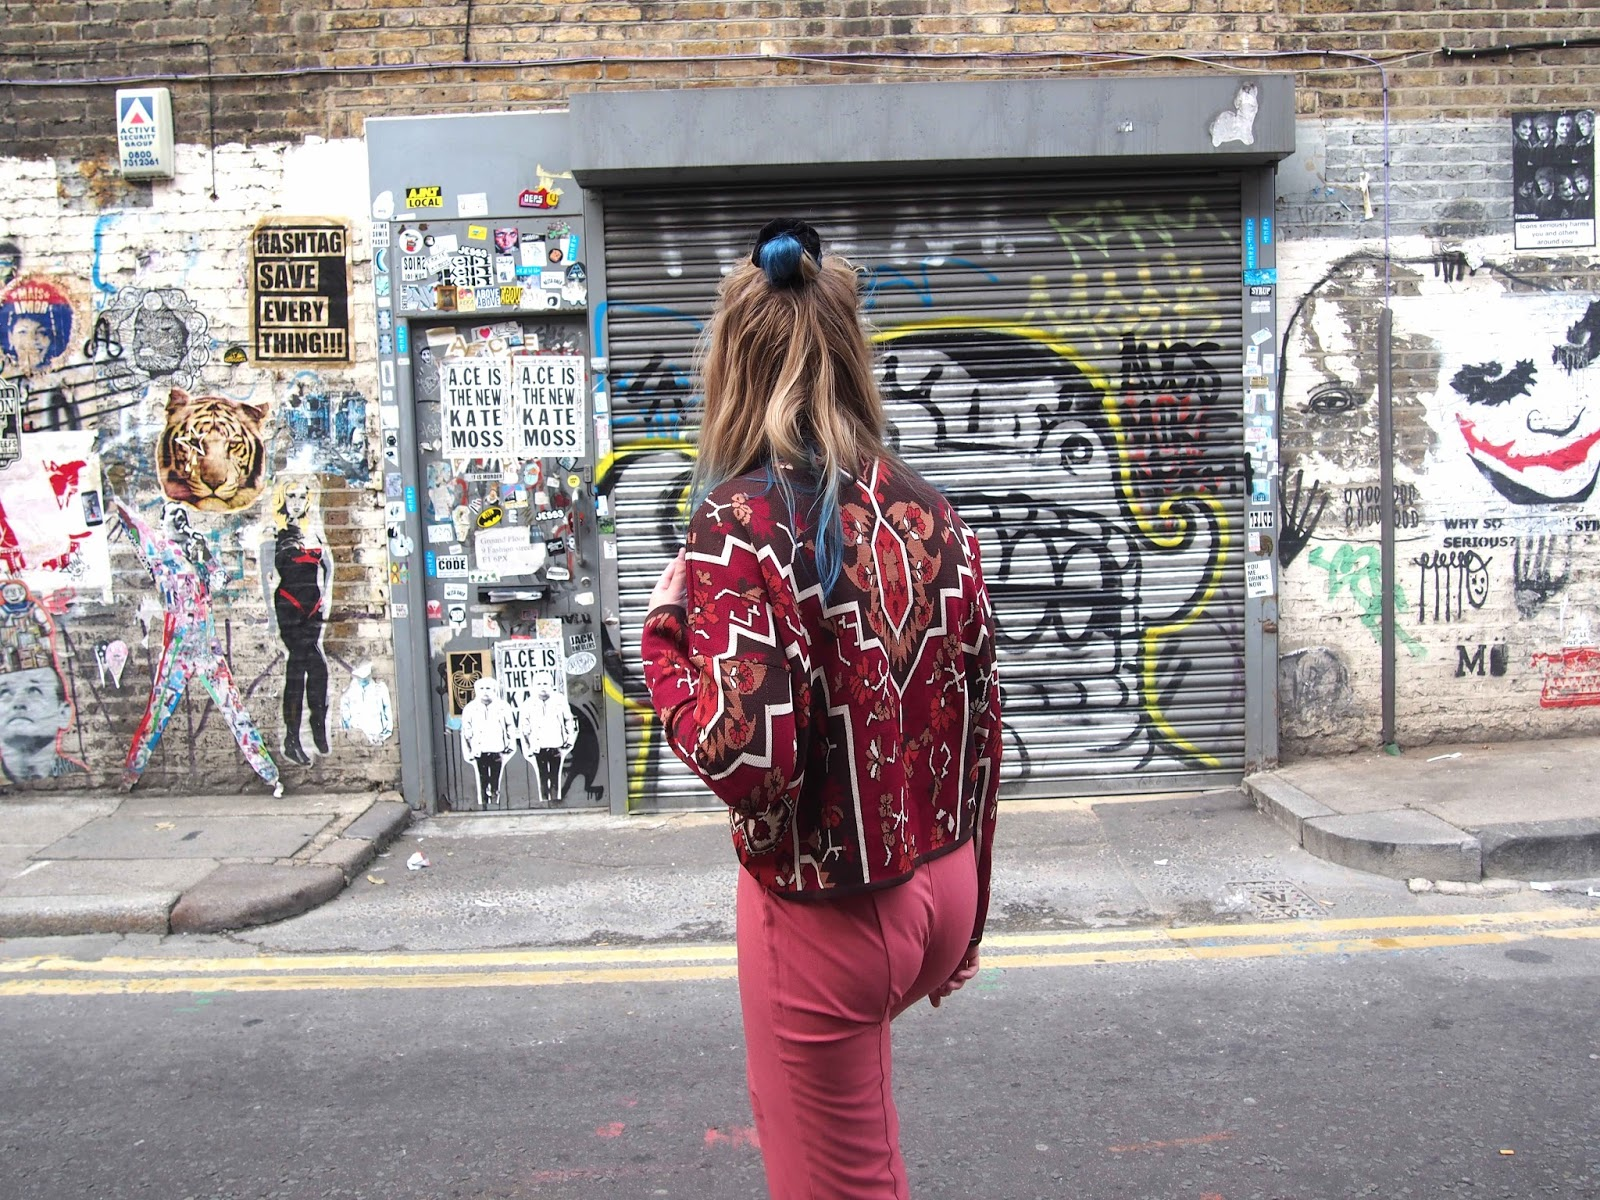 missguided autumn ootd, autumn 2016 fashion style inspiration, dusty pink cigarette trousers, nike cortez, high neck jumper, brick lane street art 1